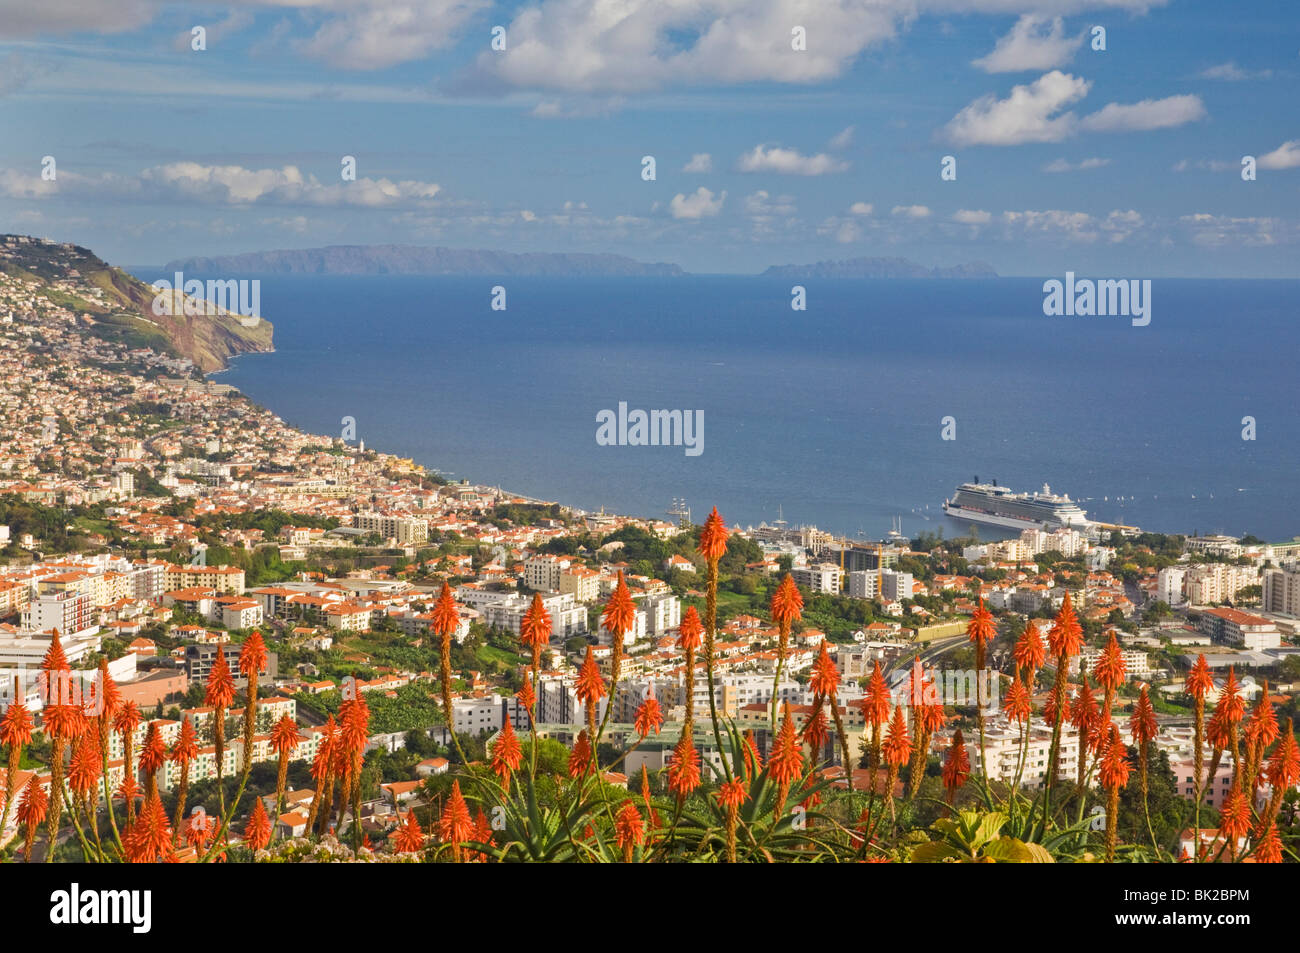 madeira portugal madeira view of Funchal the capital city of Madeira looking across the bay port harbour and old - Stock Image